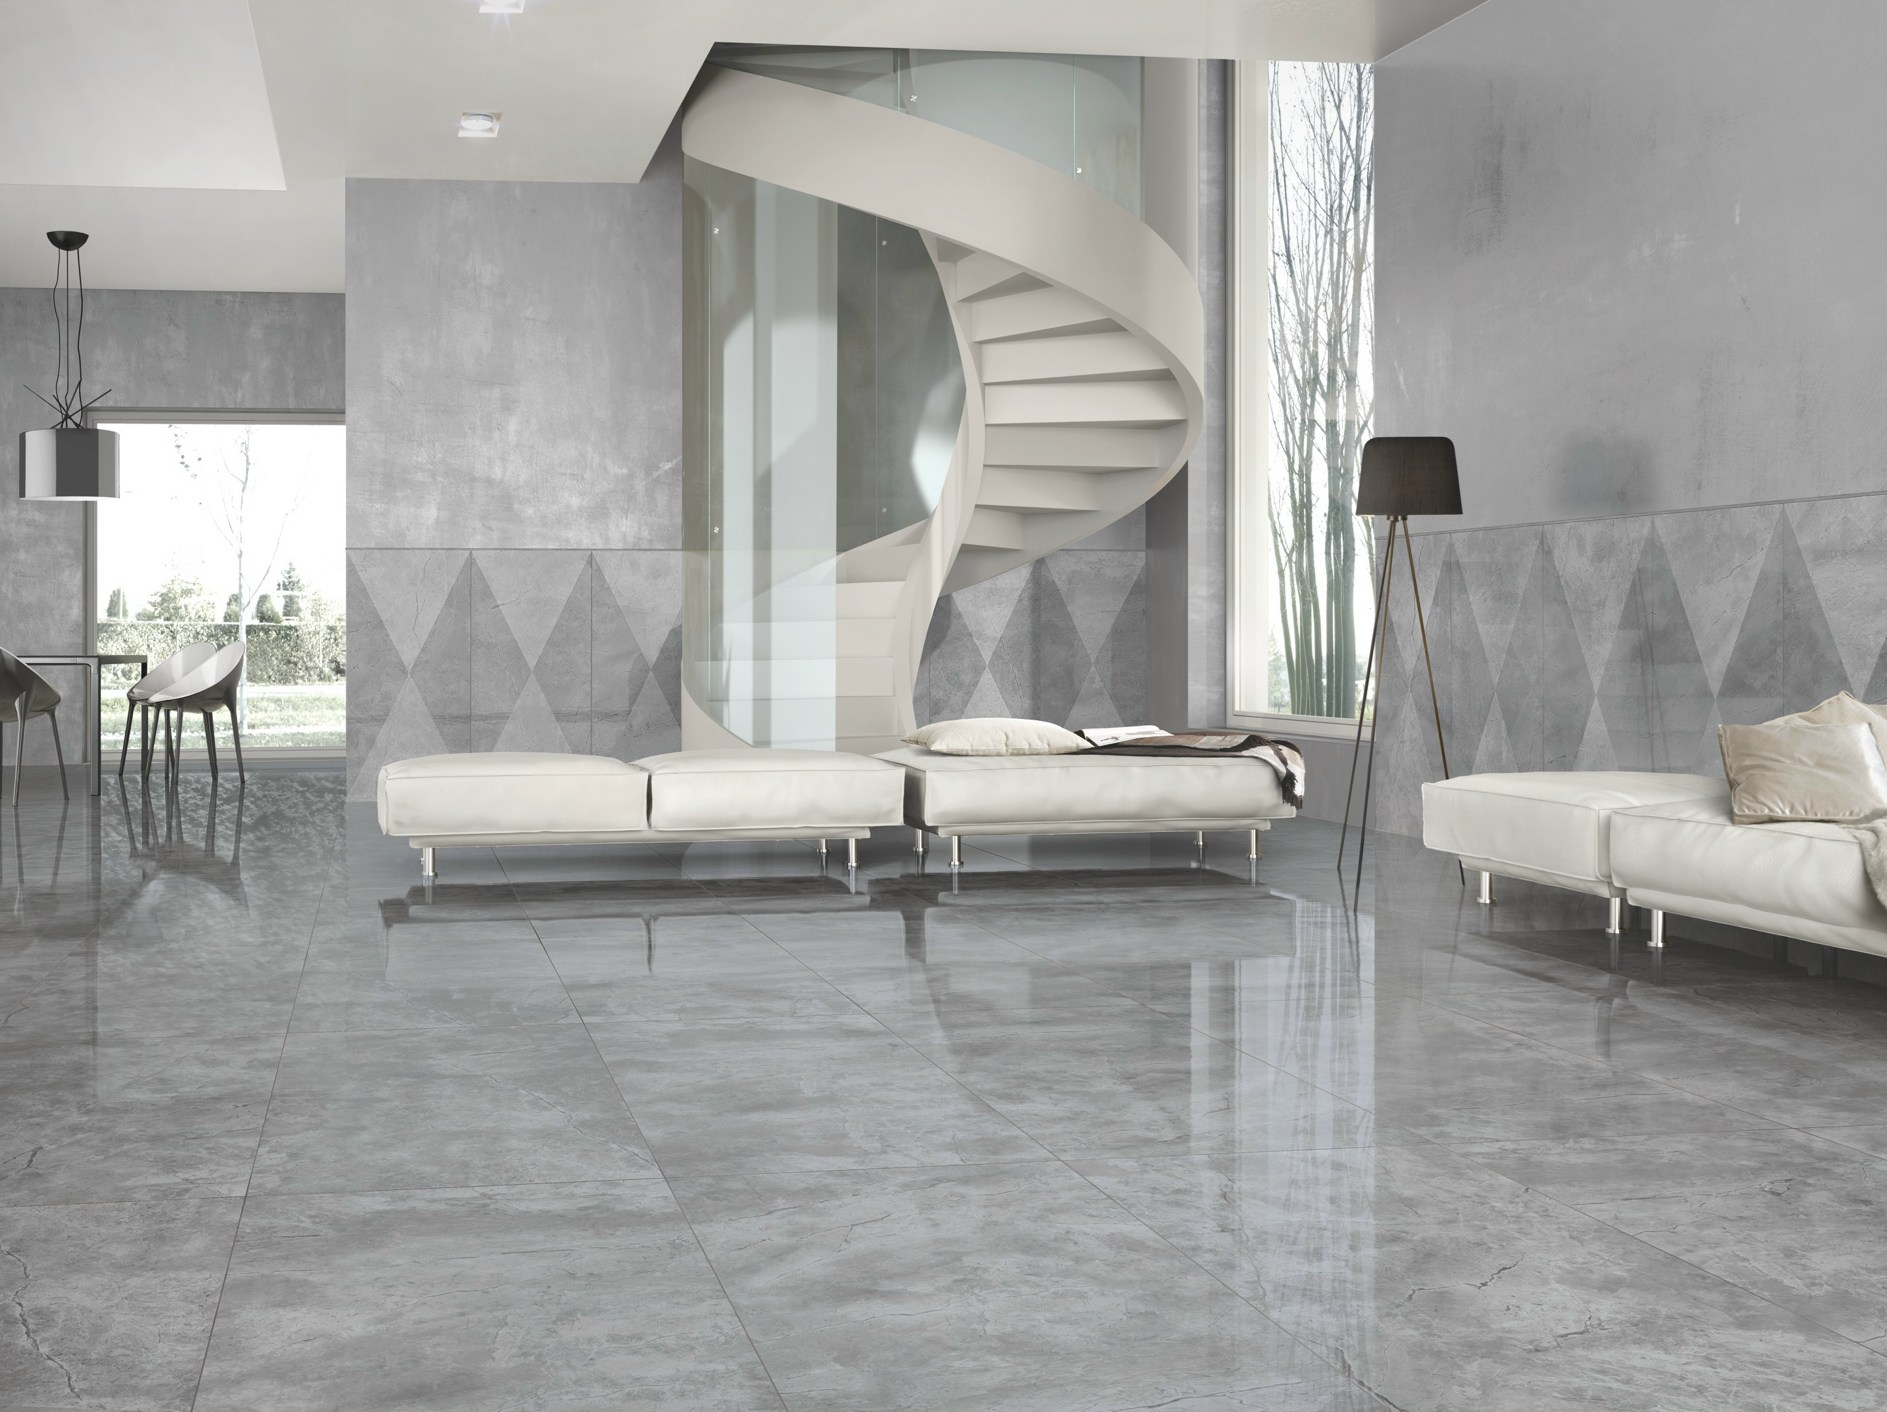 Awesome grey marble effect floor tiles contemporary flooring awesome grey marble effect floor tiles contemporary flooring dailygadgetfo Gallery